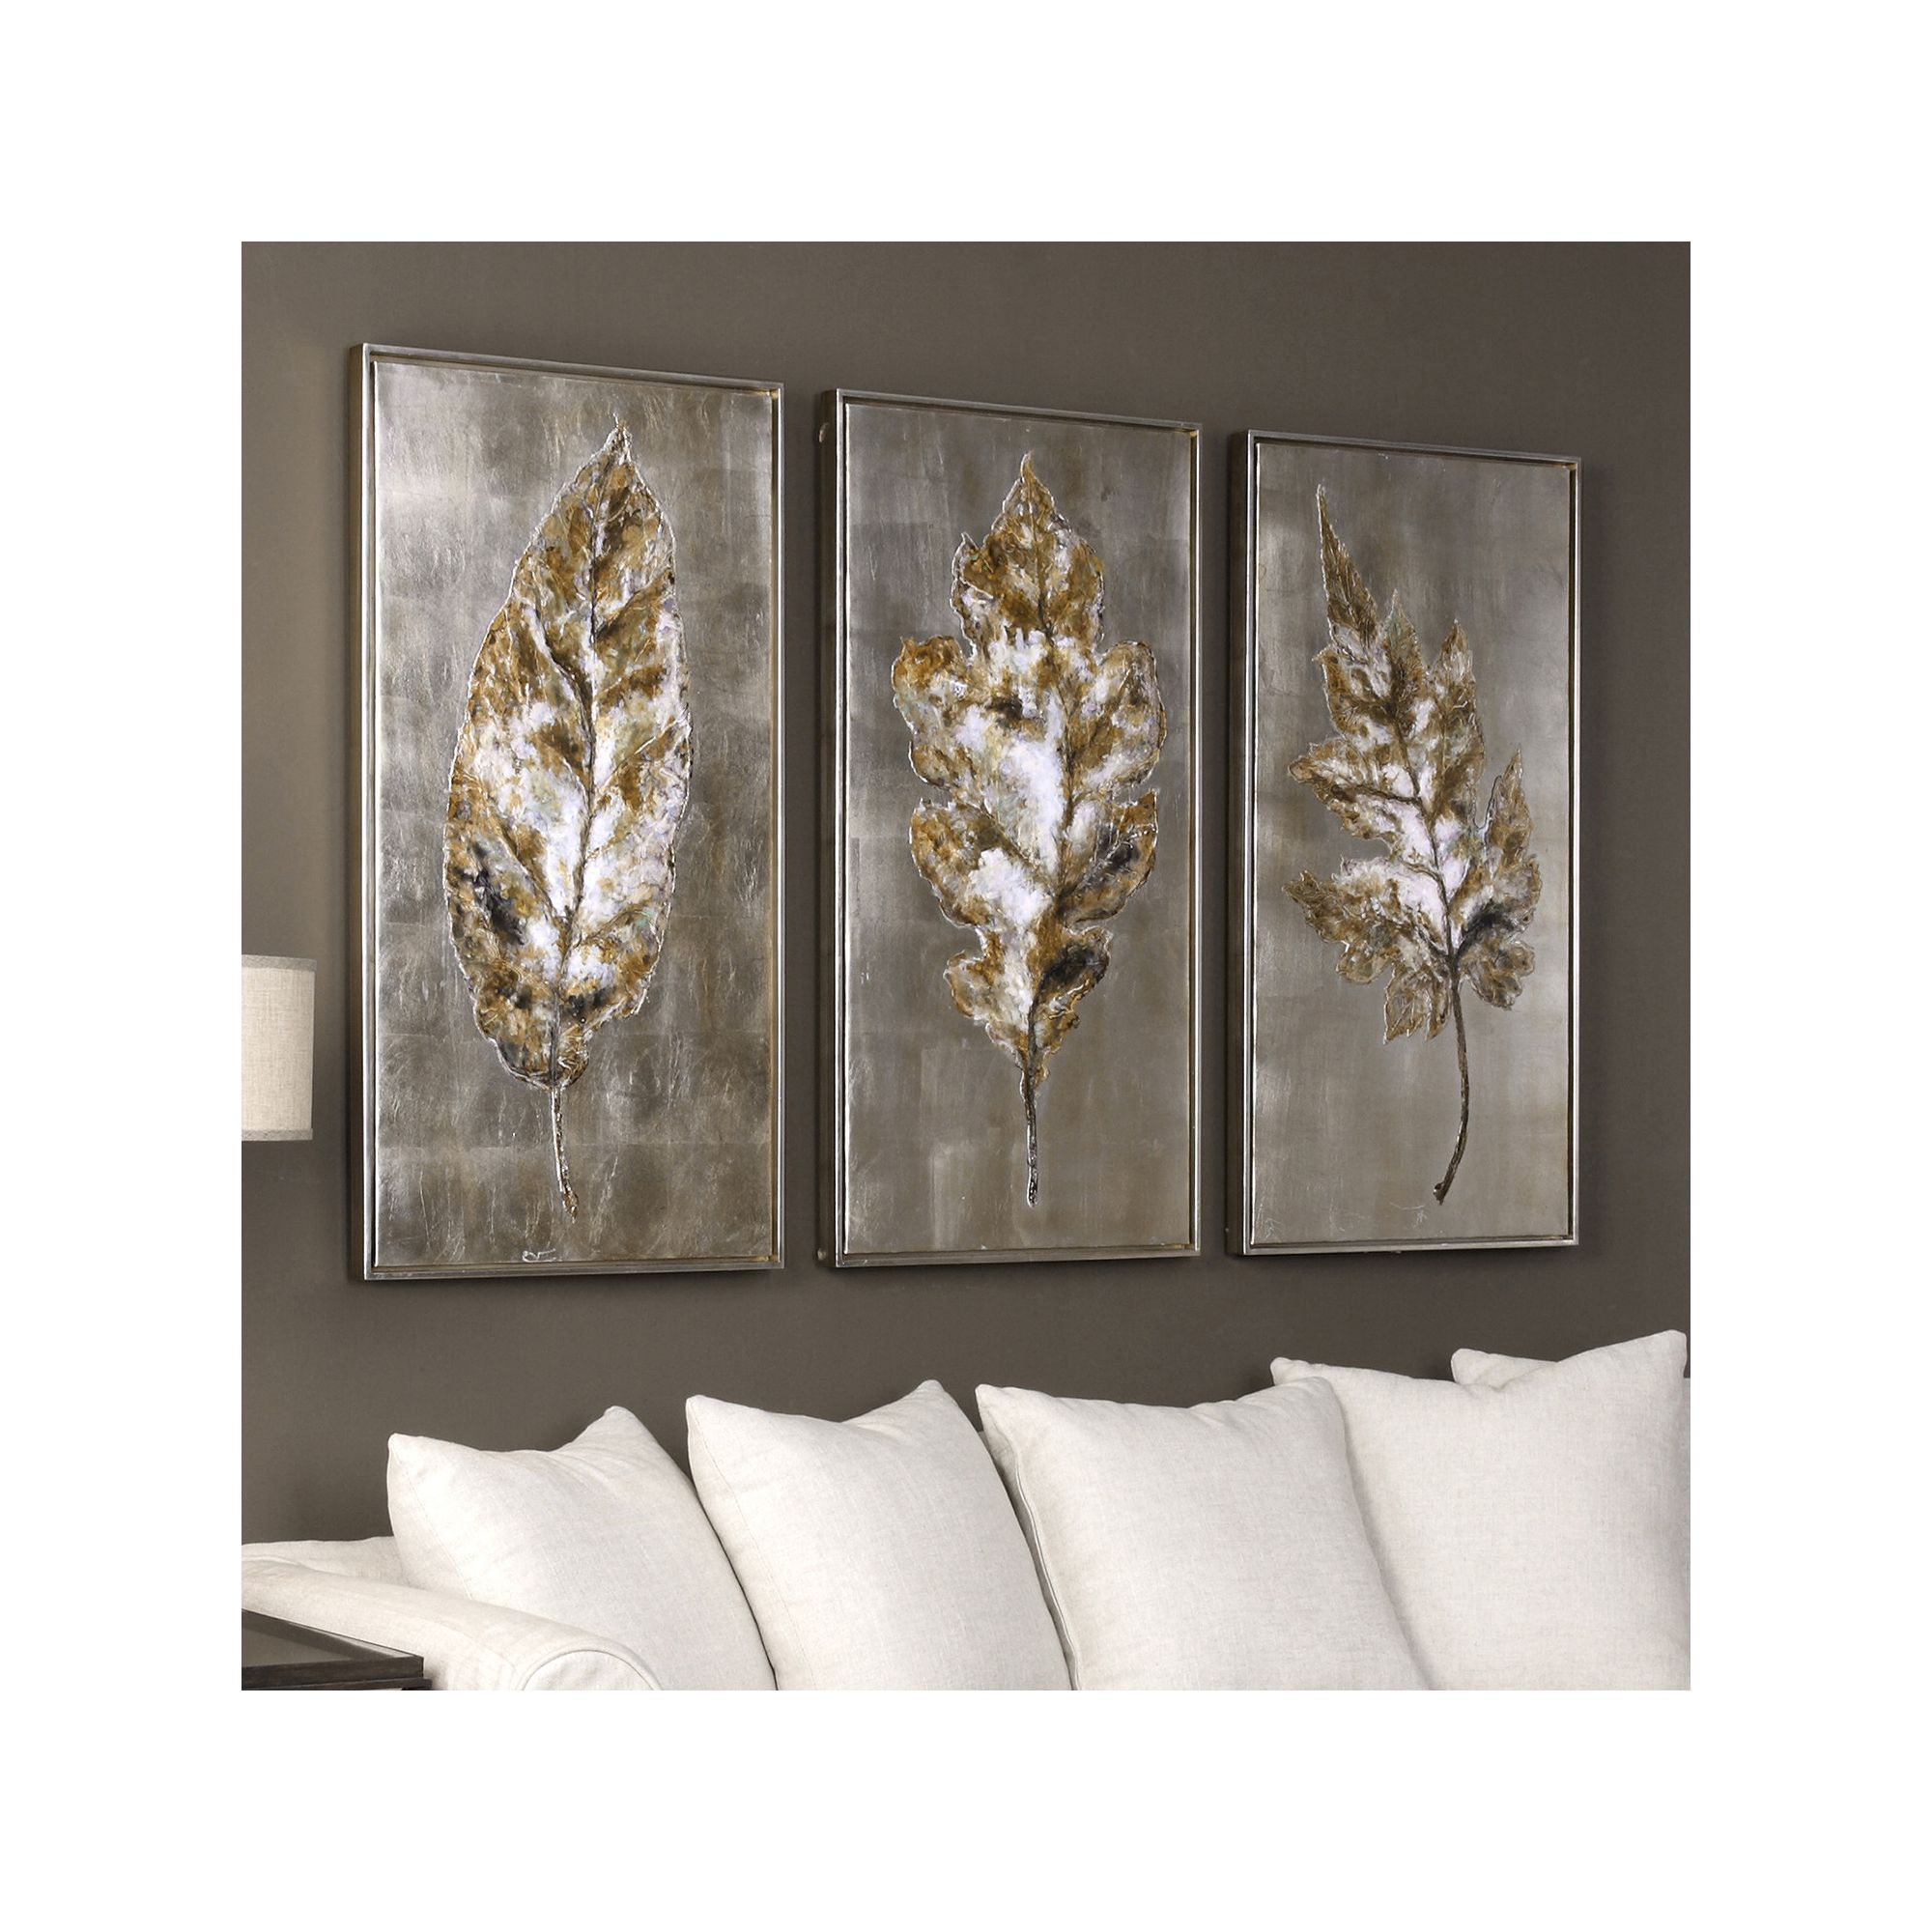 Uttermost Champagne Leaves Framed Wall Art 3 Piece Set In 2019 Within Most Popular 2 Piece Panel Wood Wall Decor Sets (Set Of 2) (Gallery 5 of 20)